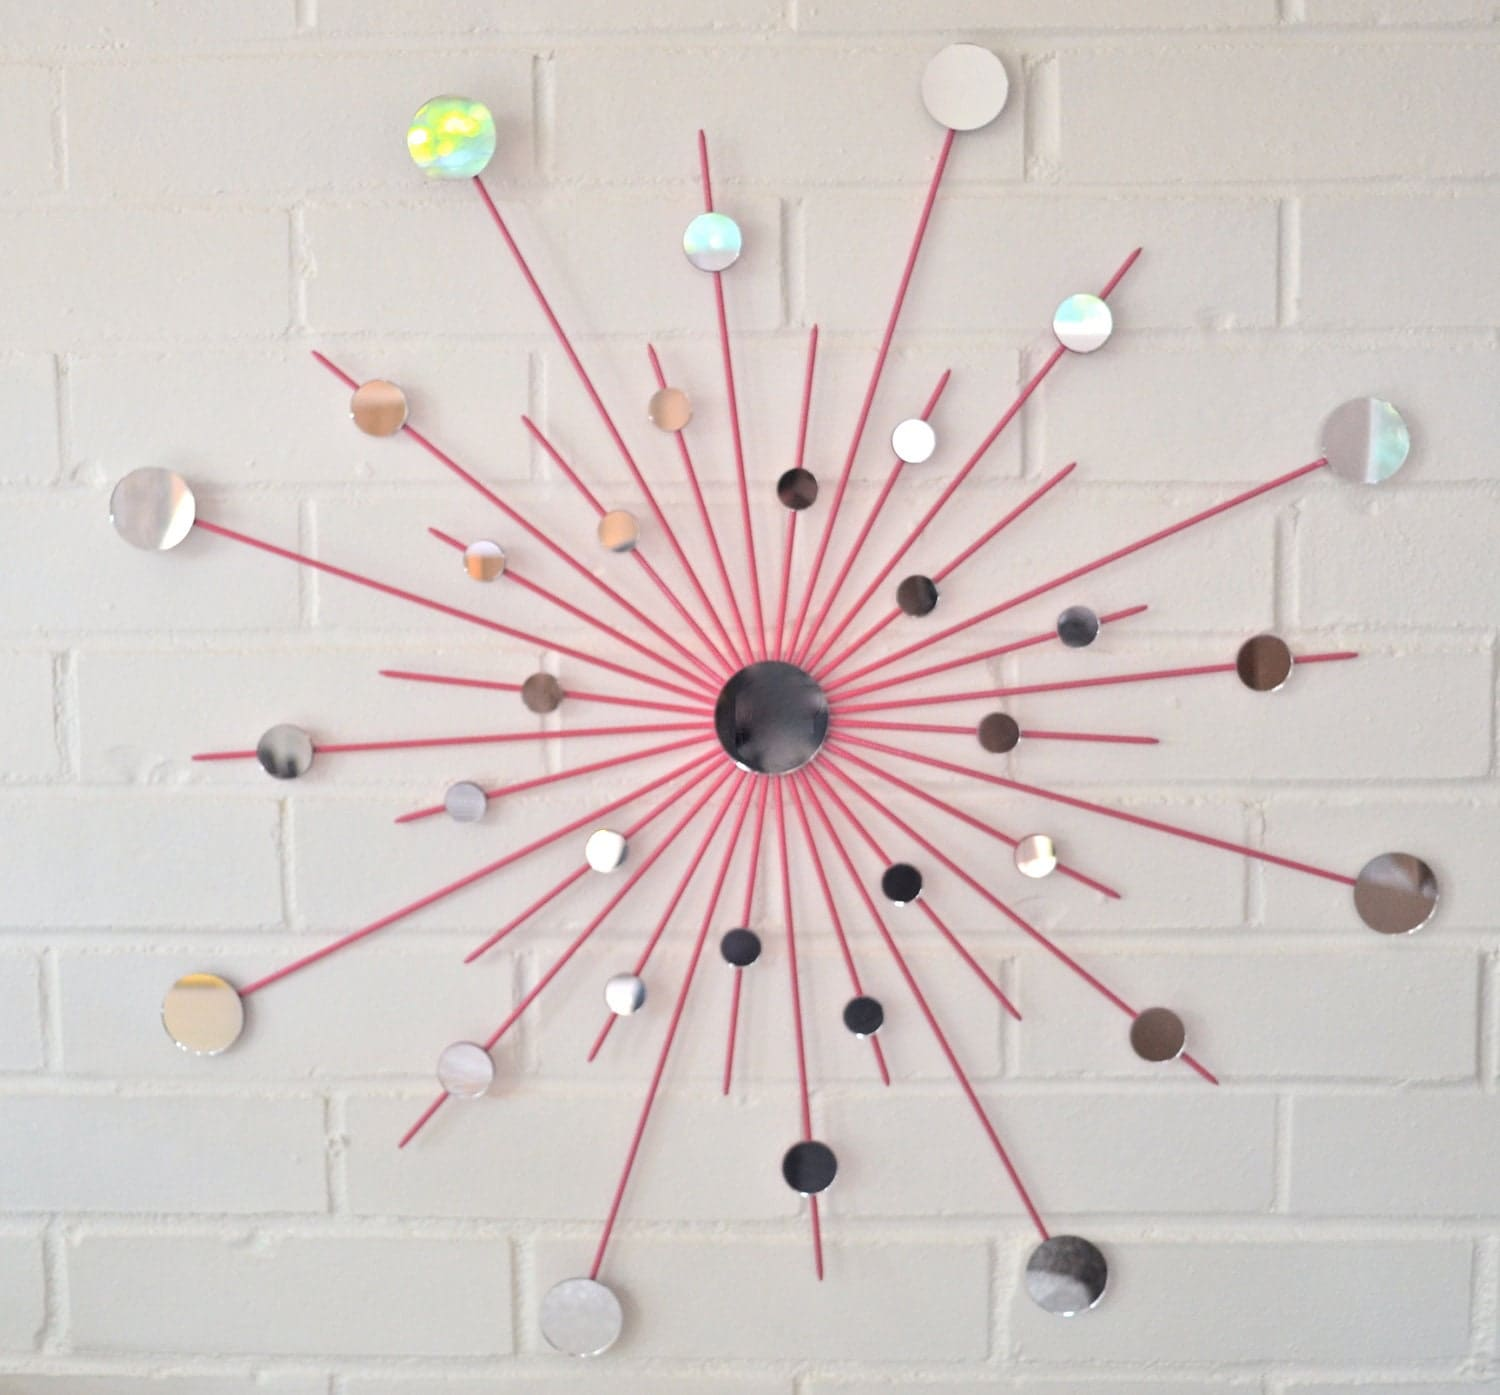 Retro Starburst Wall Decor : Unavailable listing on etsy